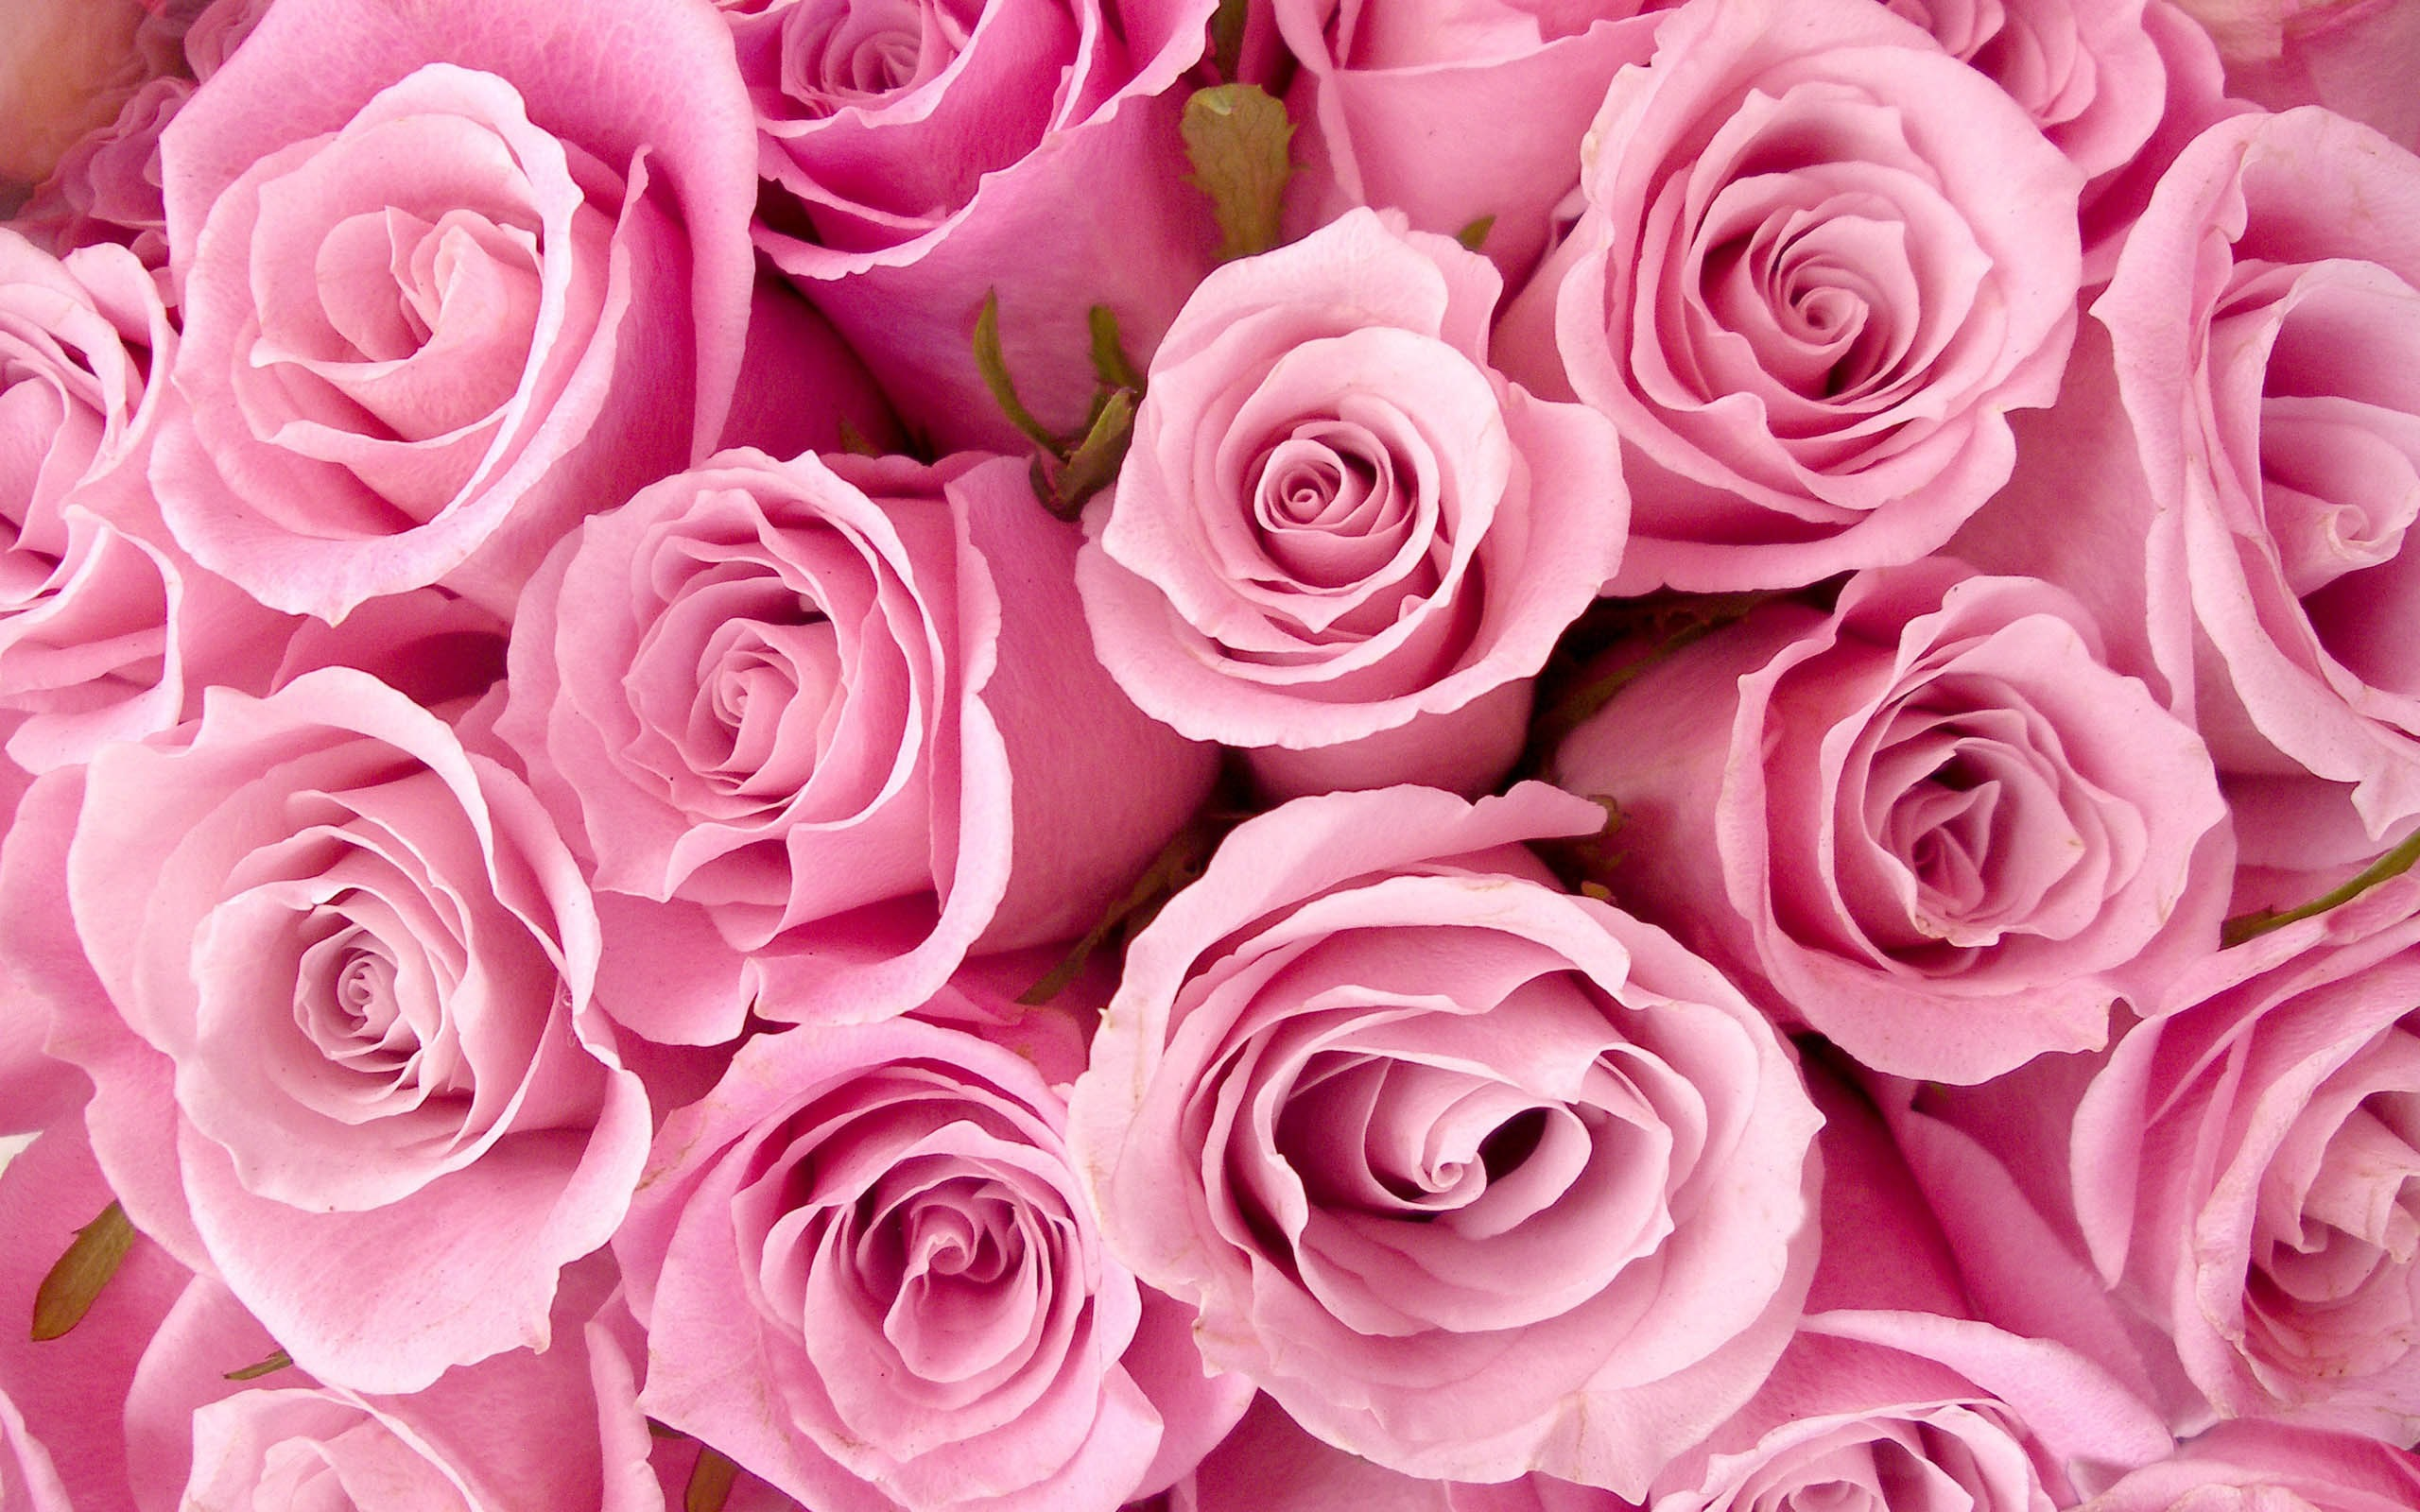 Rose Flower Wallpaper Tumblr 17819 2560x1600px